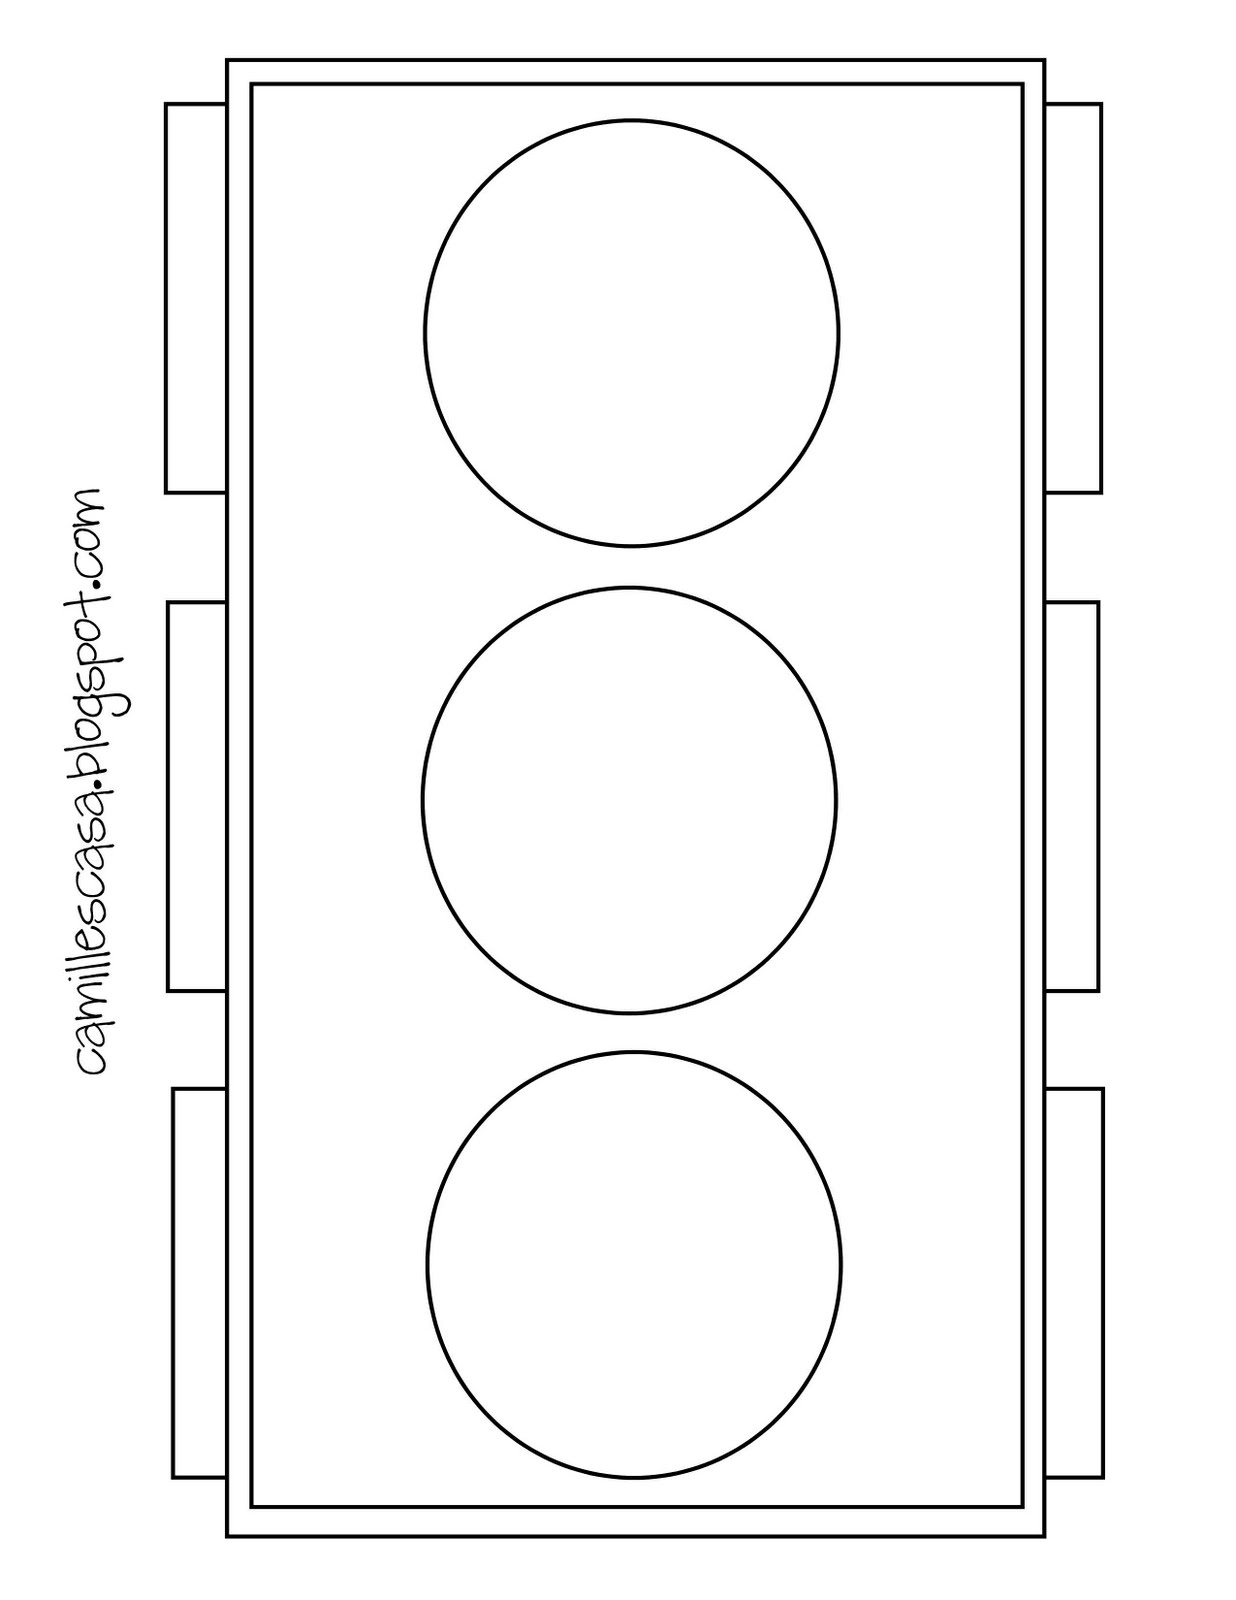 traffic light coloring page - camille 39 s casa holy ghost baptism talk